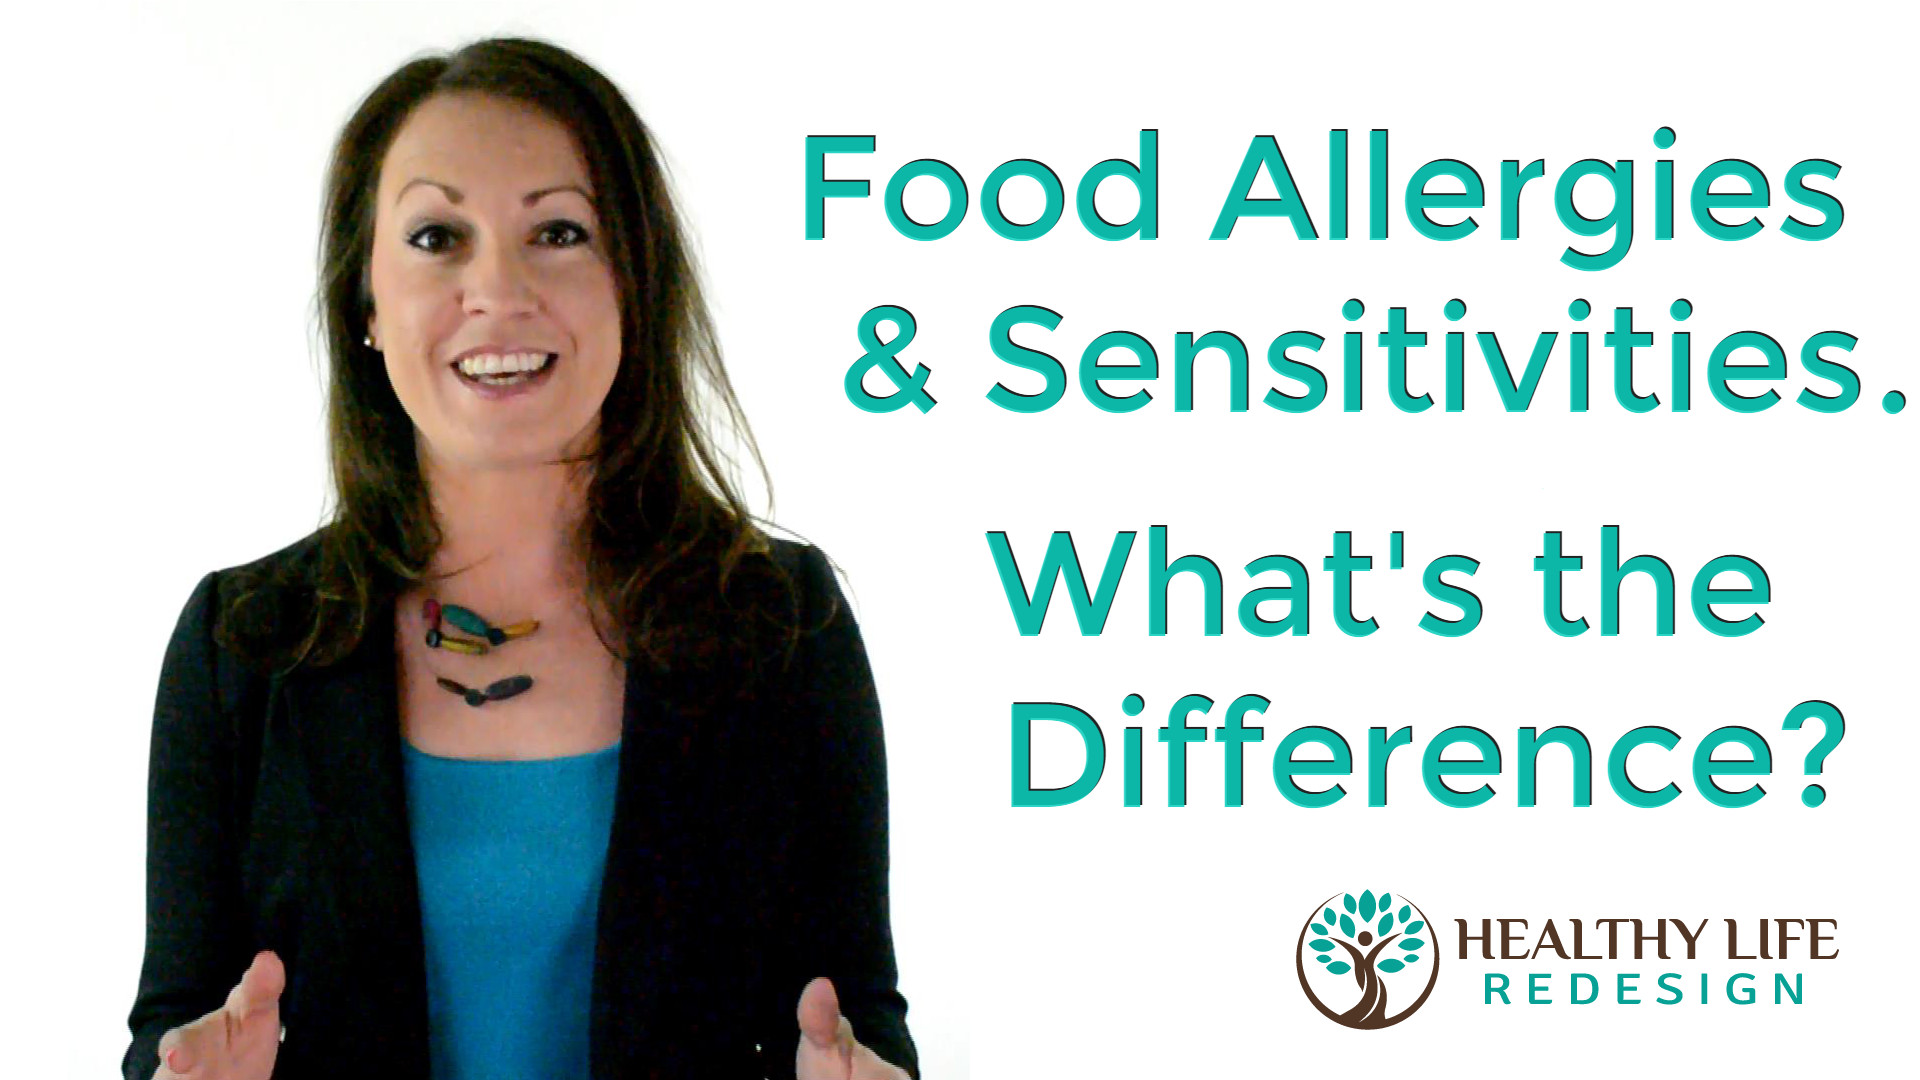 Food allergies & sensitivities... What's the difference?